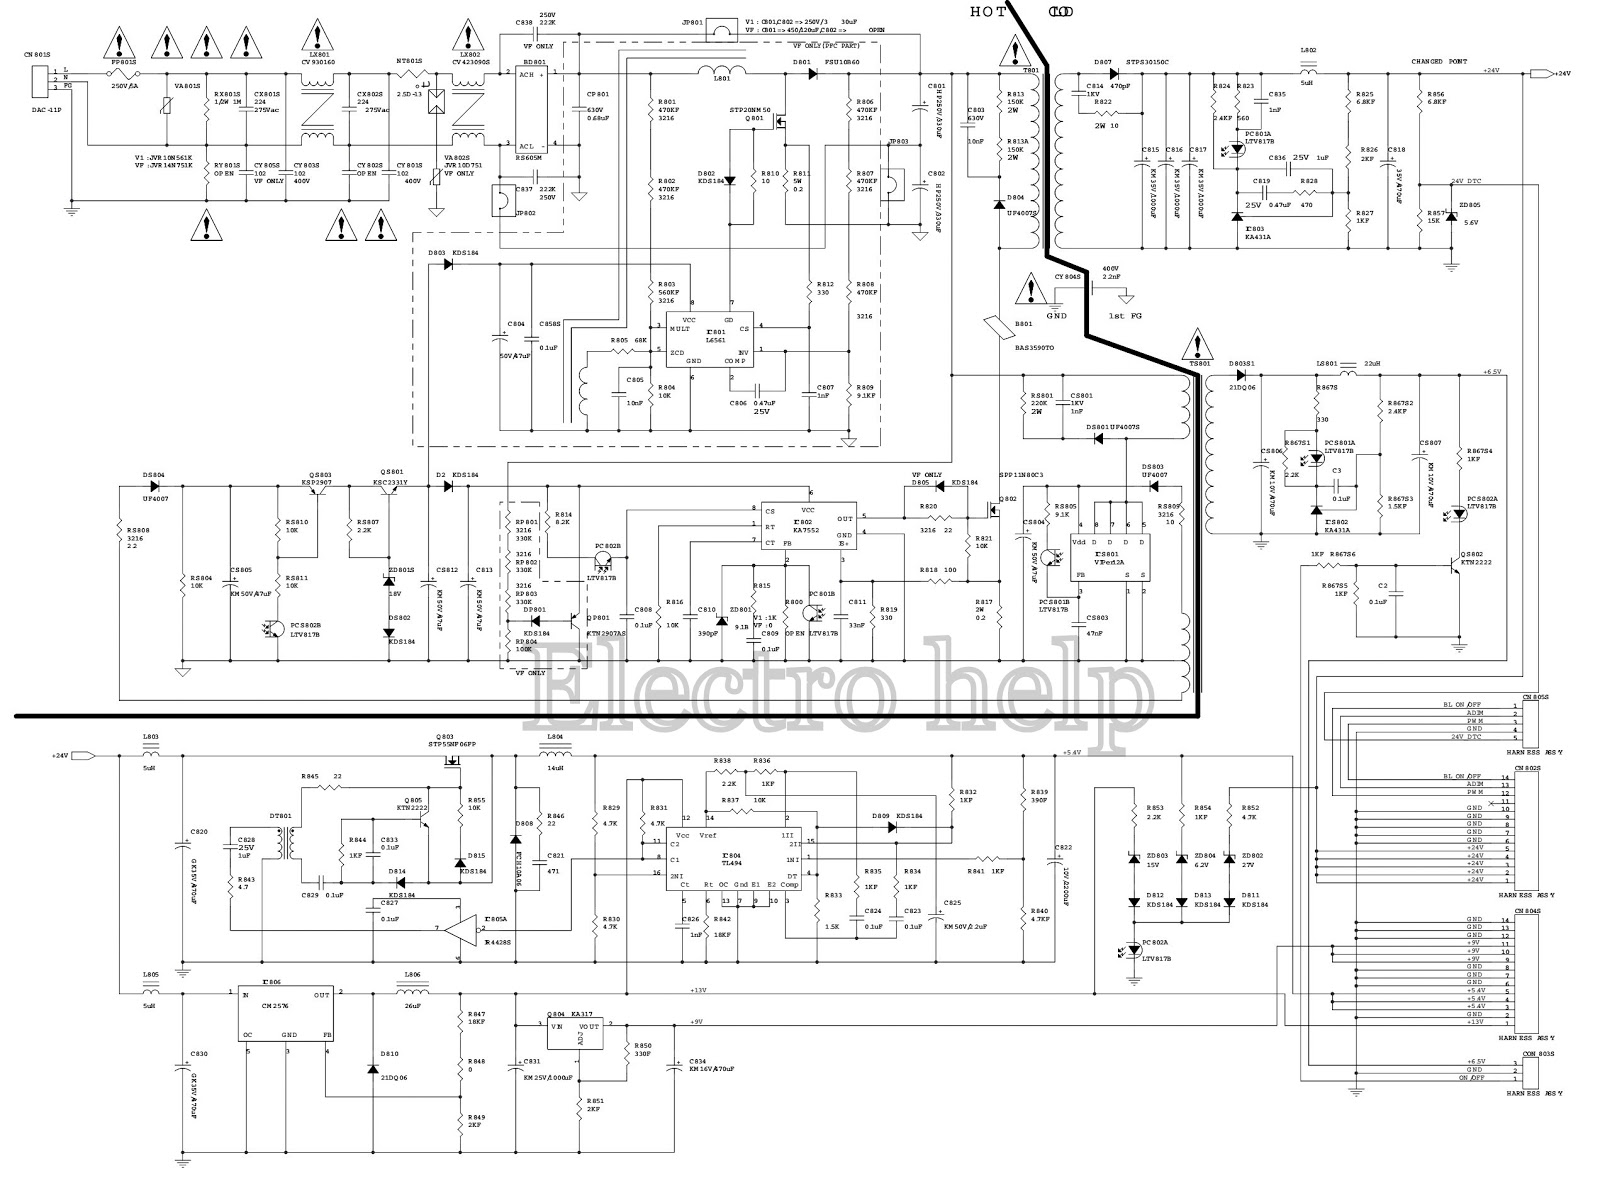 small resolution of philips tv circuit diagram how to repair led tv backlight problem no picture